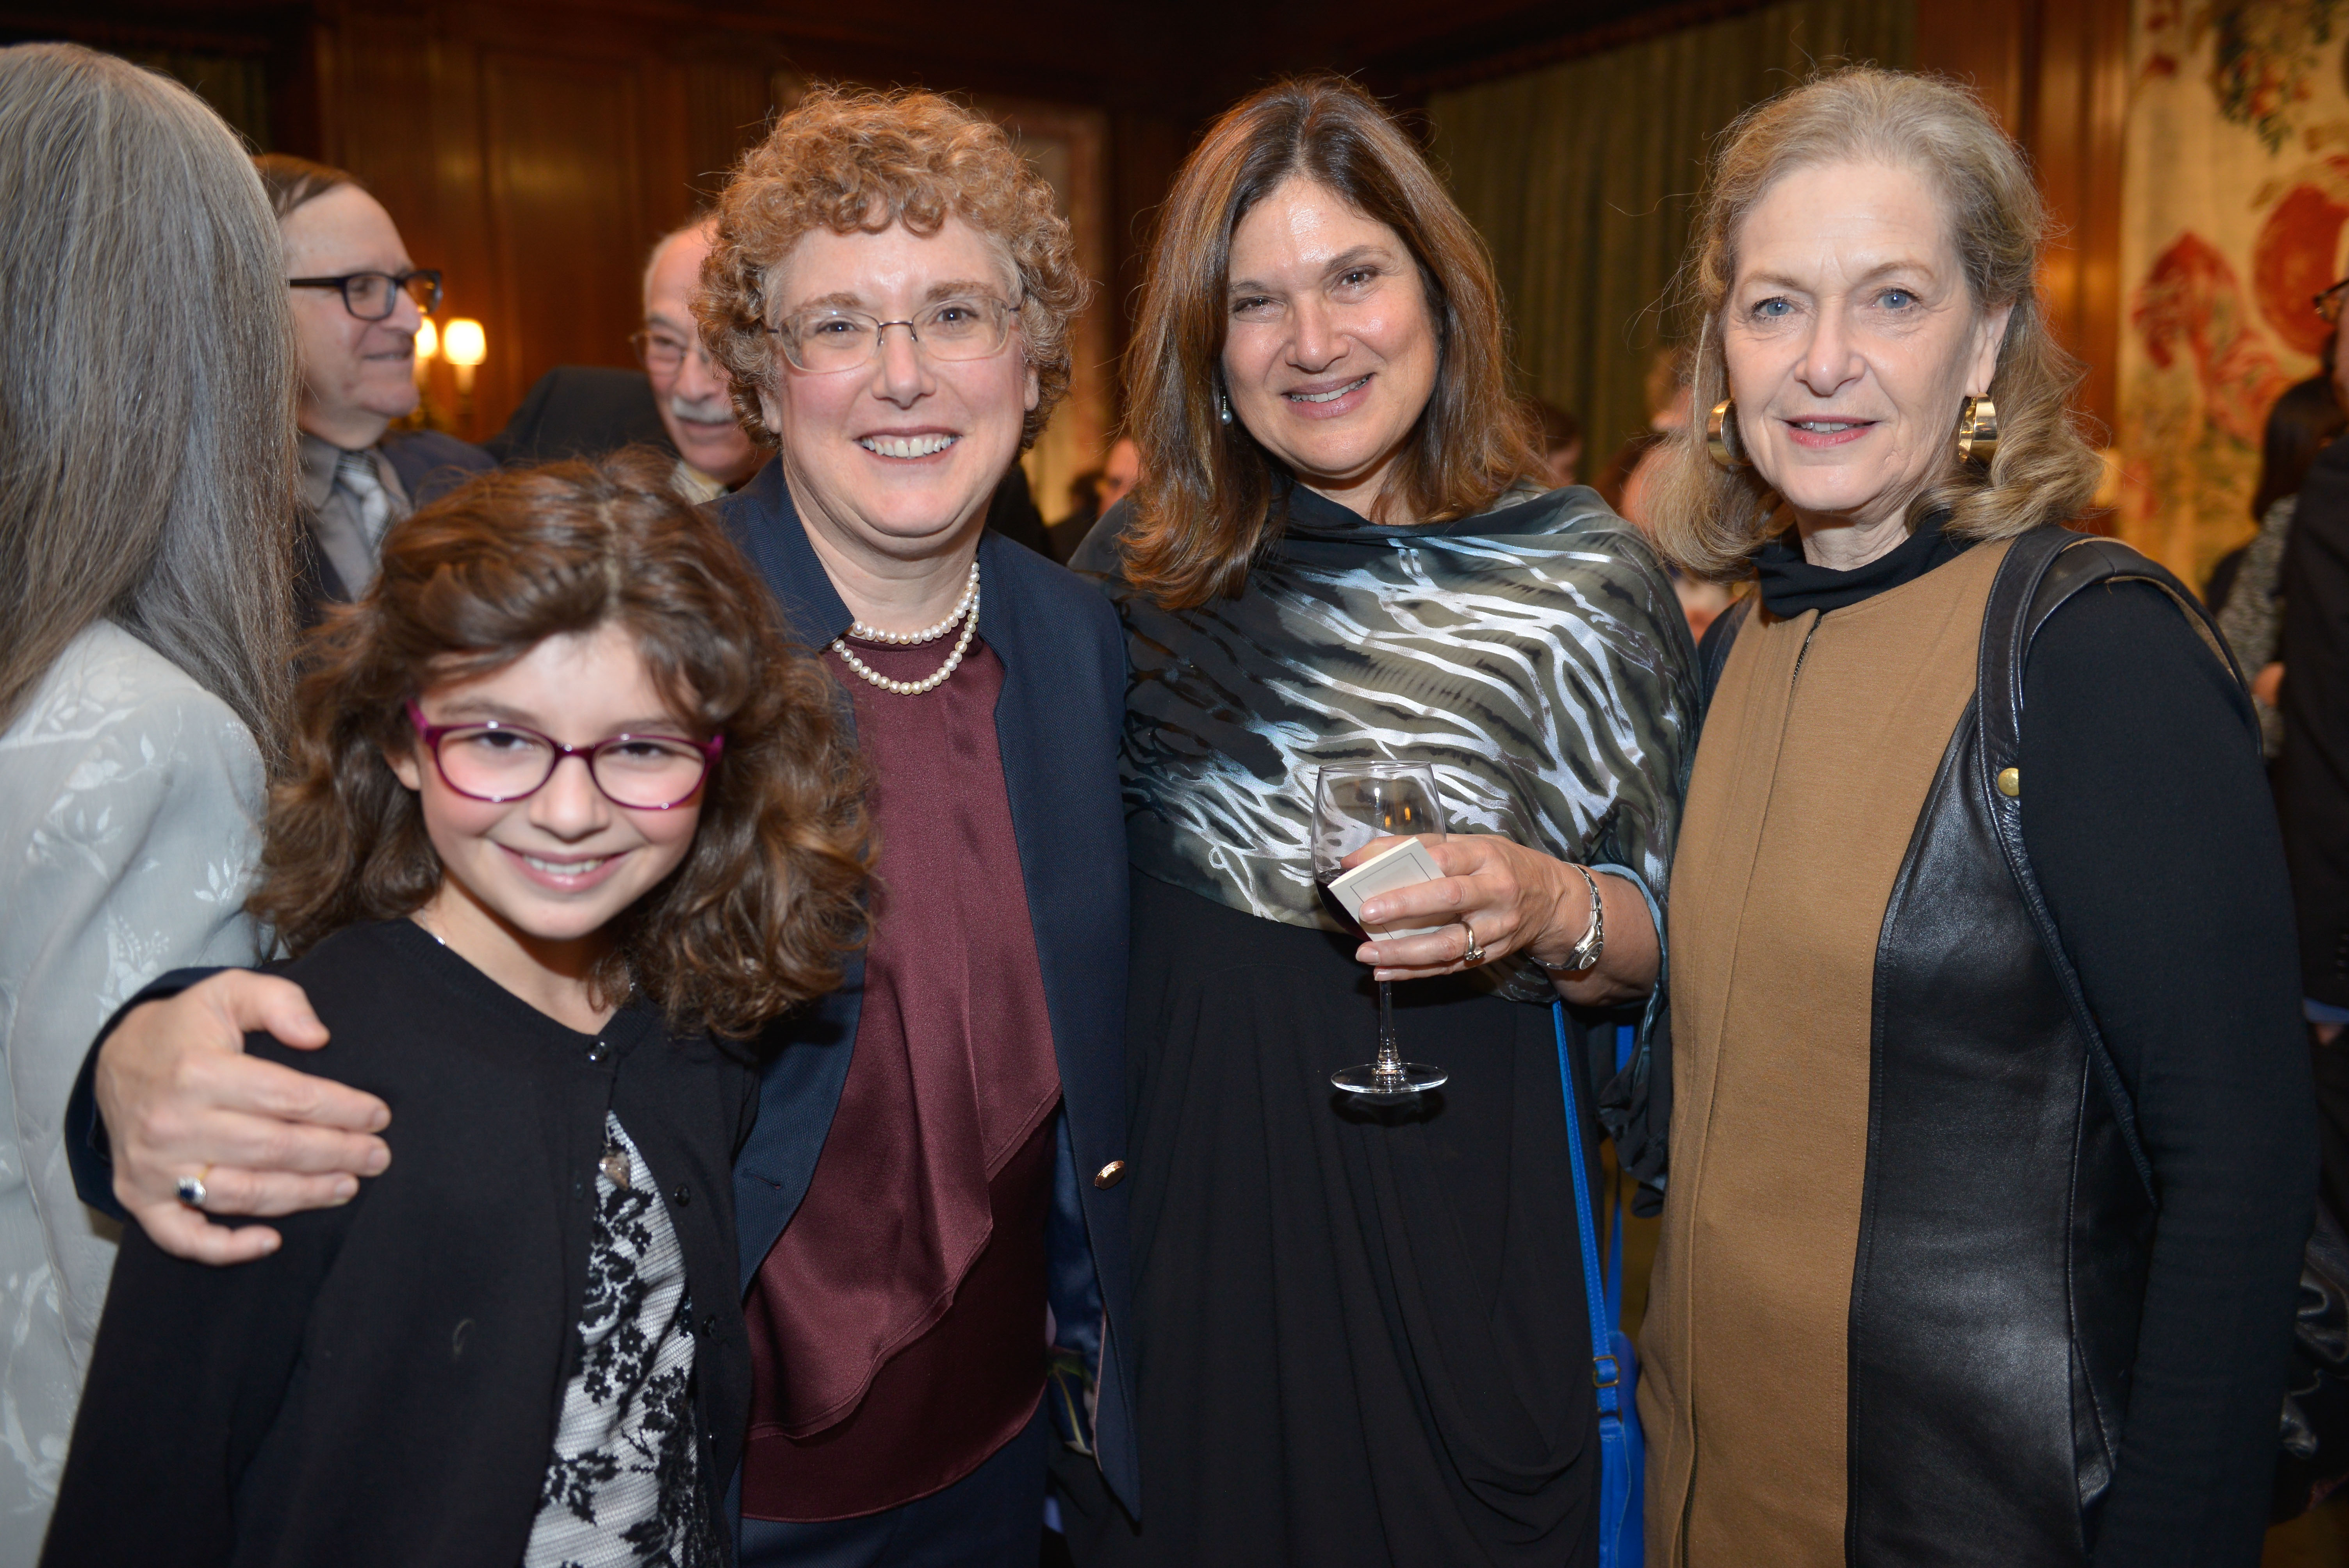 From left: Jordana Kaplan-Tanchel, 2018 Covenant Award Recipient Dr. Susie Tanchel, 2008 Covenant Award Recipient Diana Ganger, and Susie's nominator Arnee Winshall.